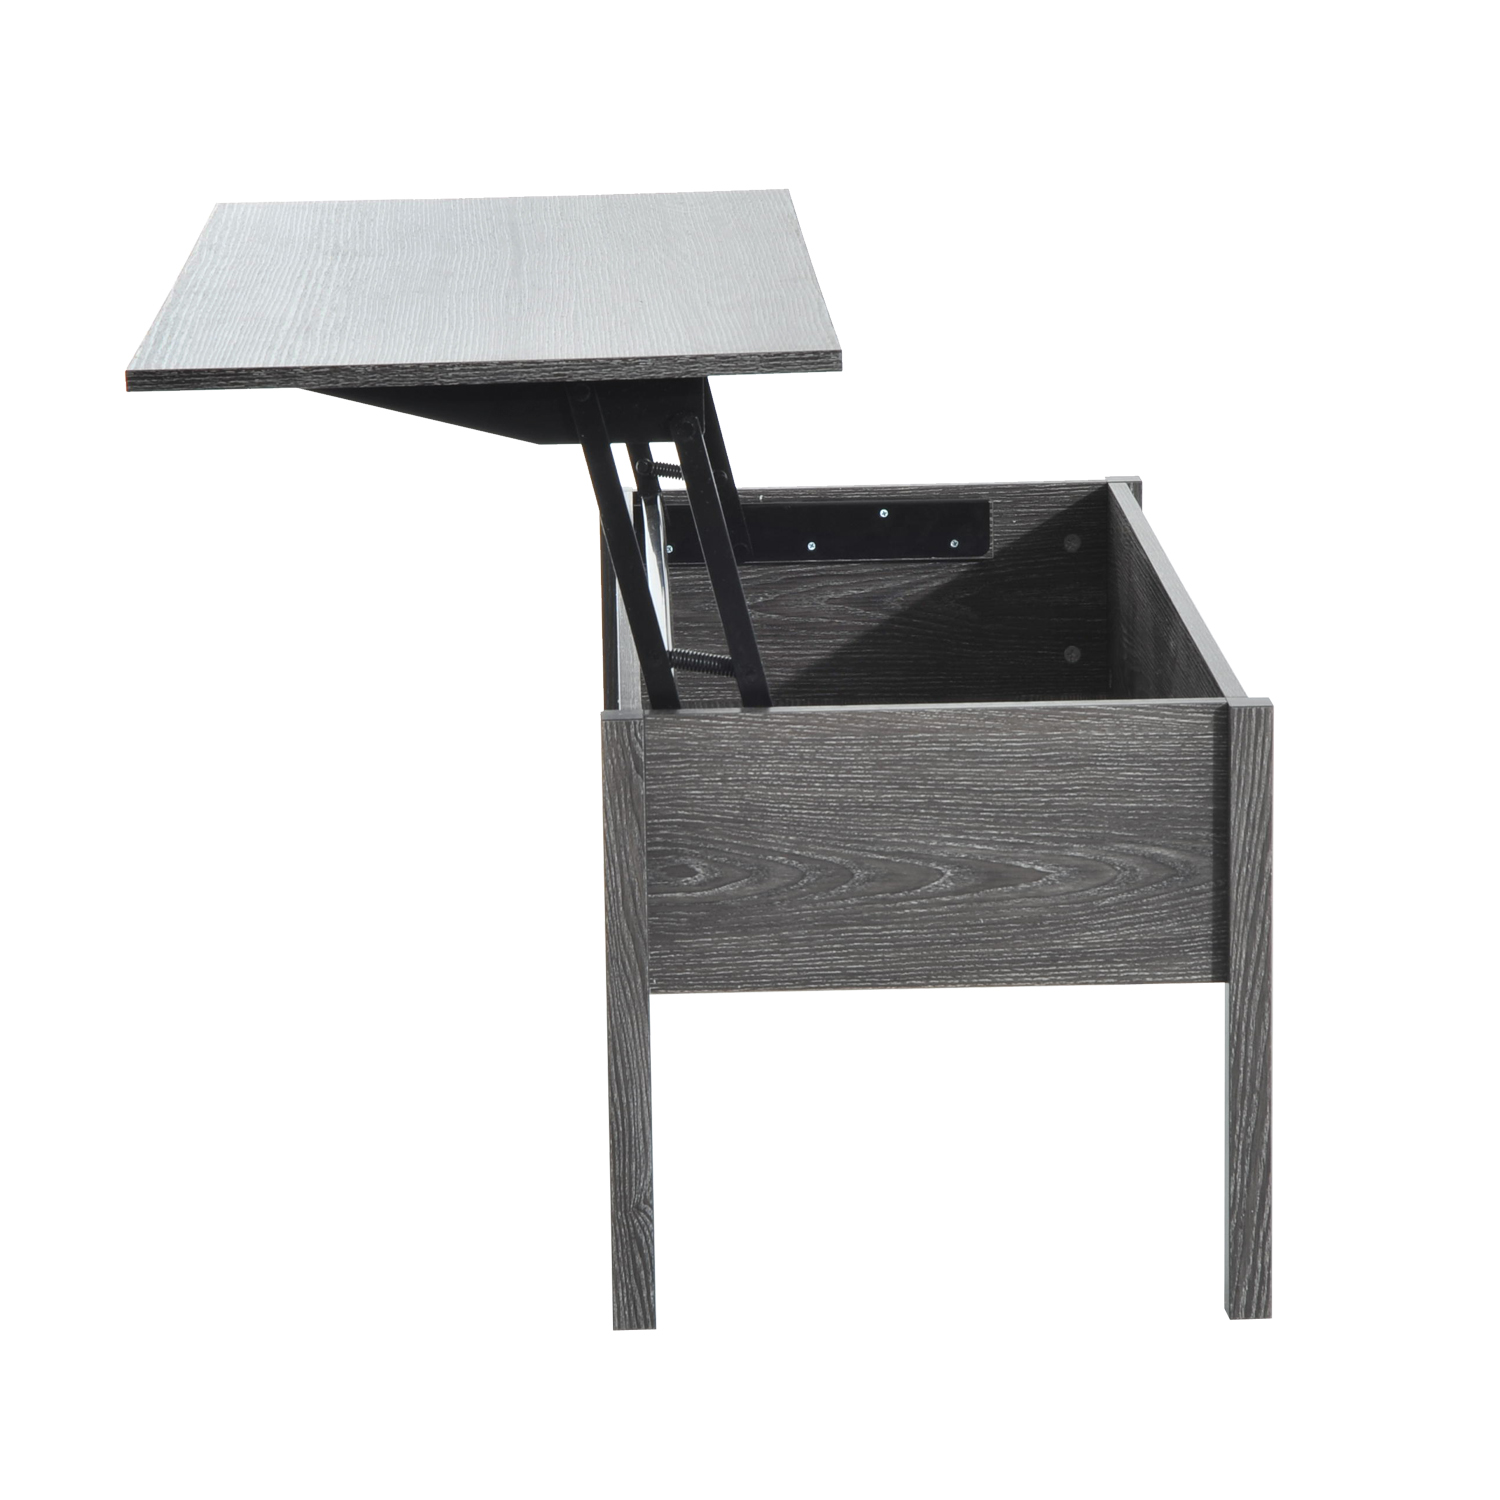 39-Modern-Lift-Top-Coffee-Table-Floating-Retractable-Lift-Top-Hidden-Storage thumbnail 13